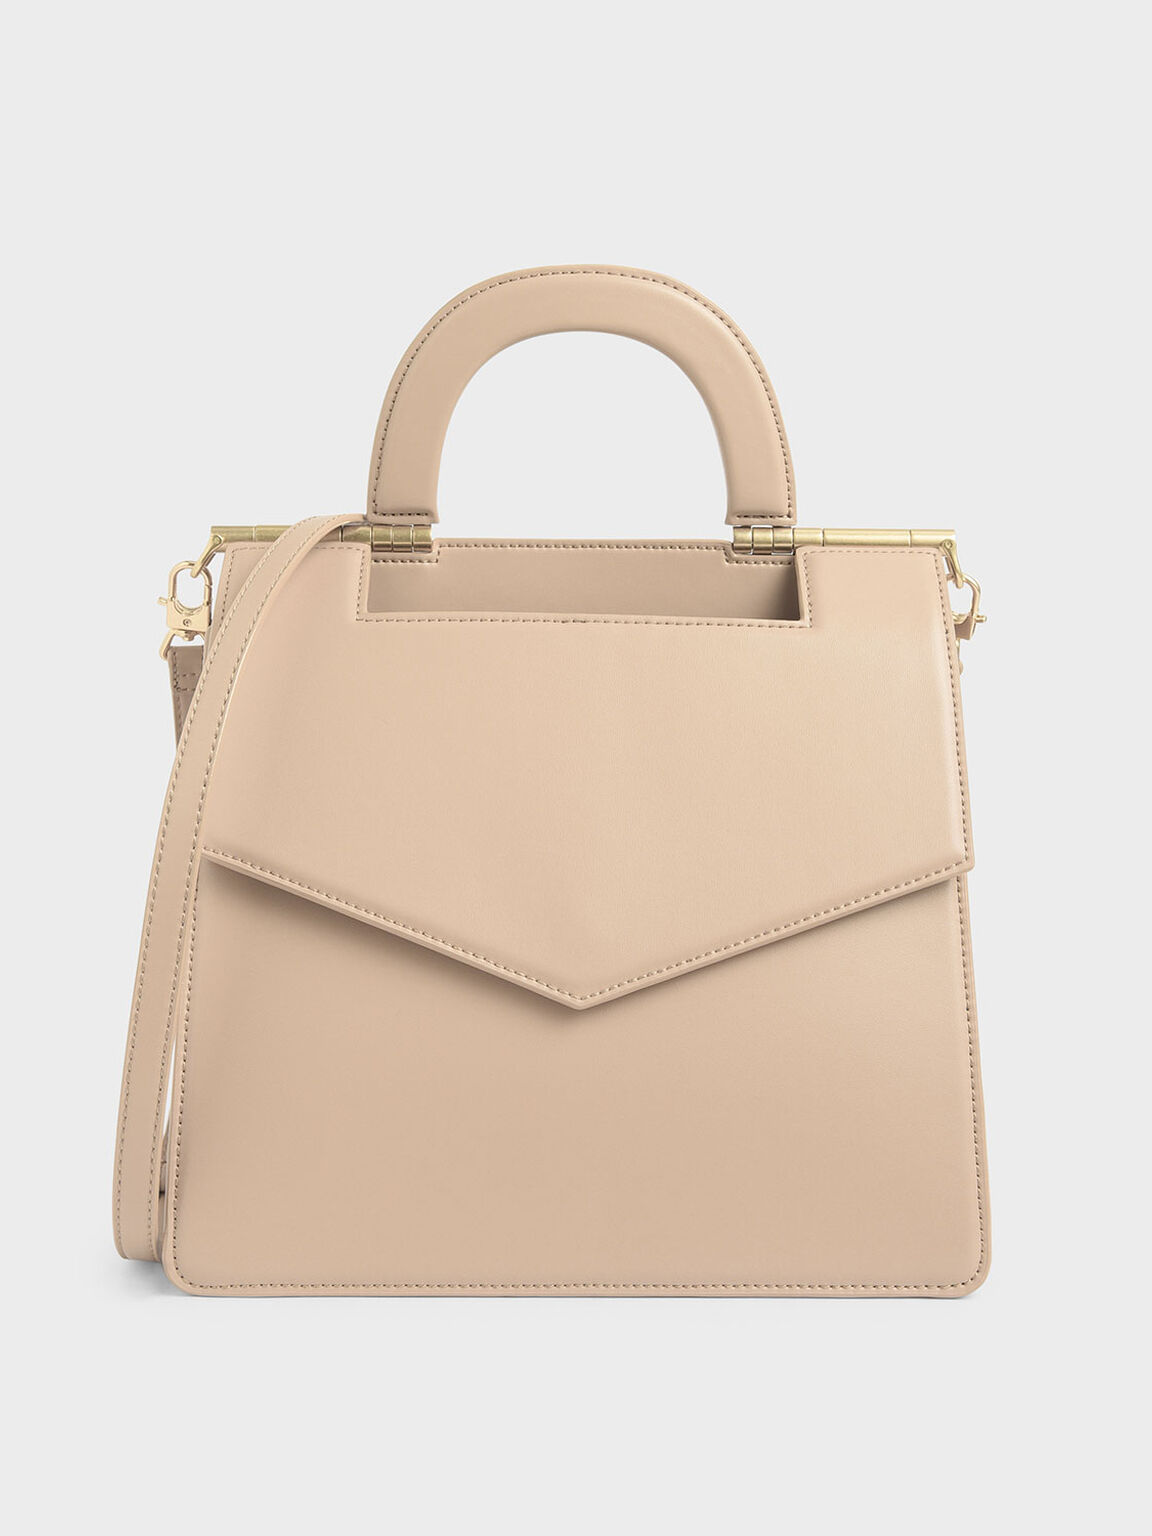 Envelope Bag, Beige, hi-res